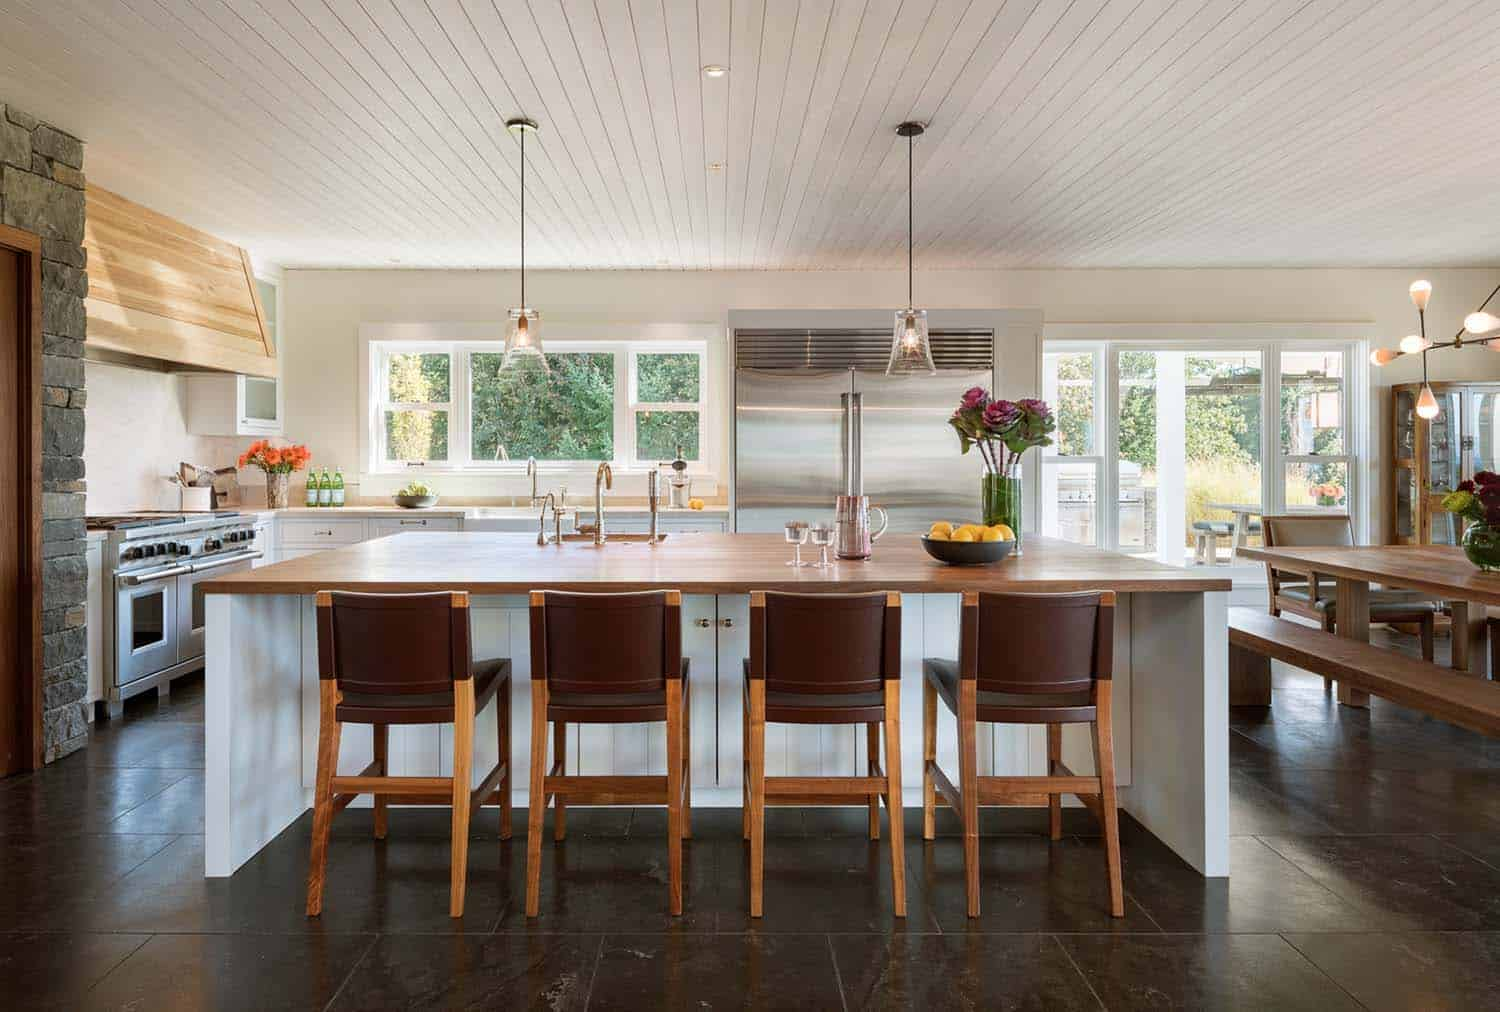 Contemporary Farmhouse Style-Rockefeller Partners Architects-18-1 Kindesign